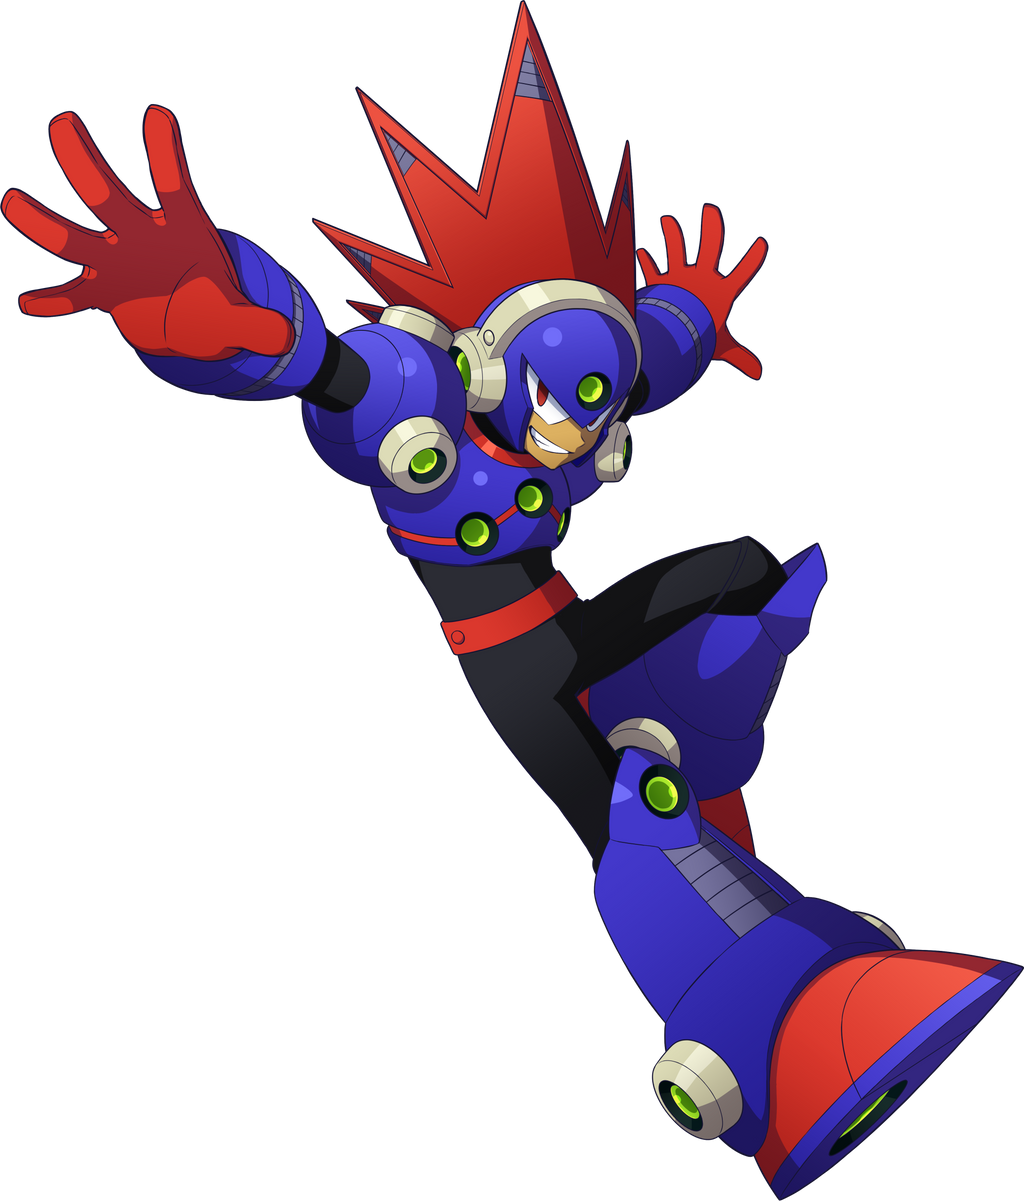 Megaman 11 Blastman render by falconburst322